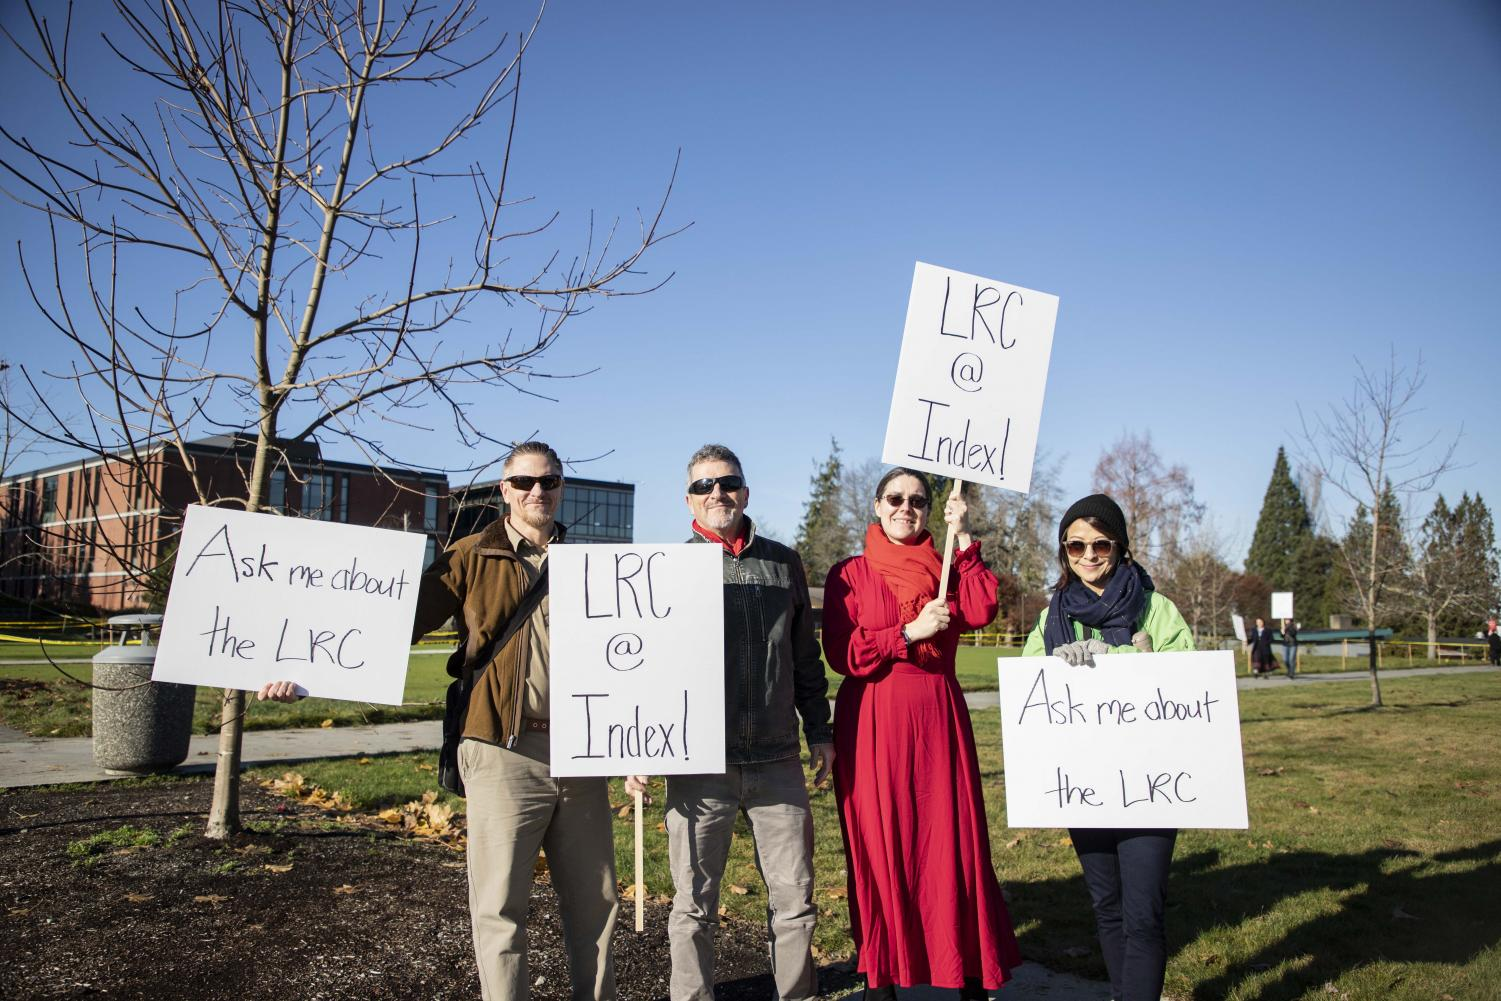 (From left to right) EvCC faculty, Mike VanQuickenborne, Robert Bertoldi, Heather Jean Uhl and Miki Aspree display their picket signs at the LRC protest on Wednesday, Nov. 20 at the Index greenspace.